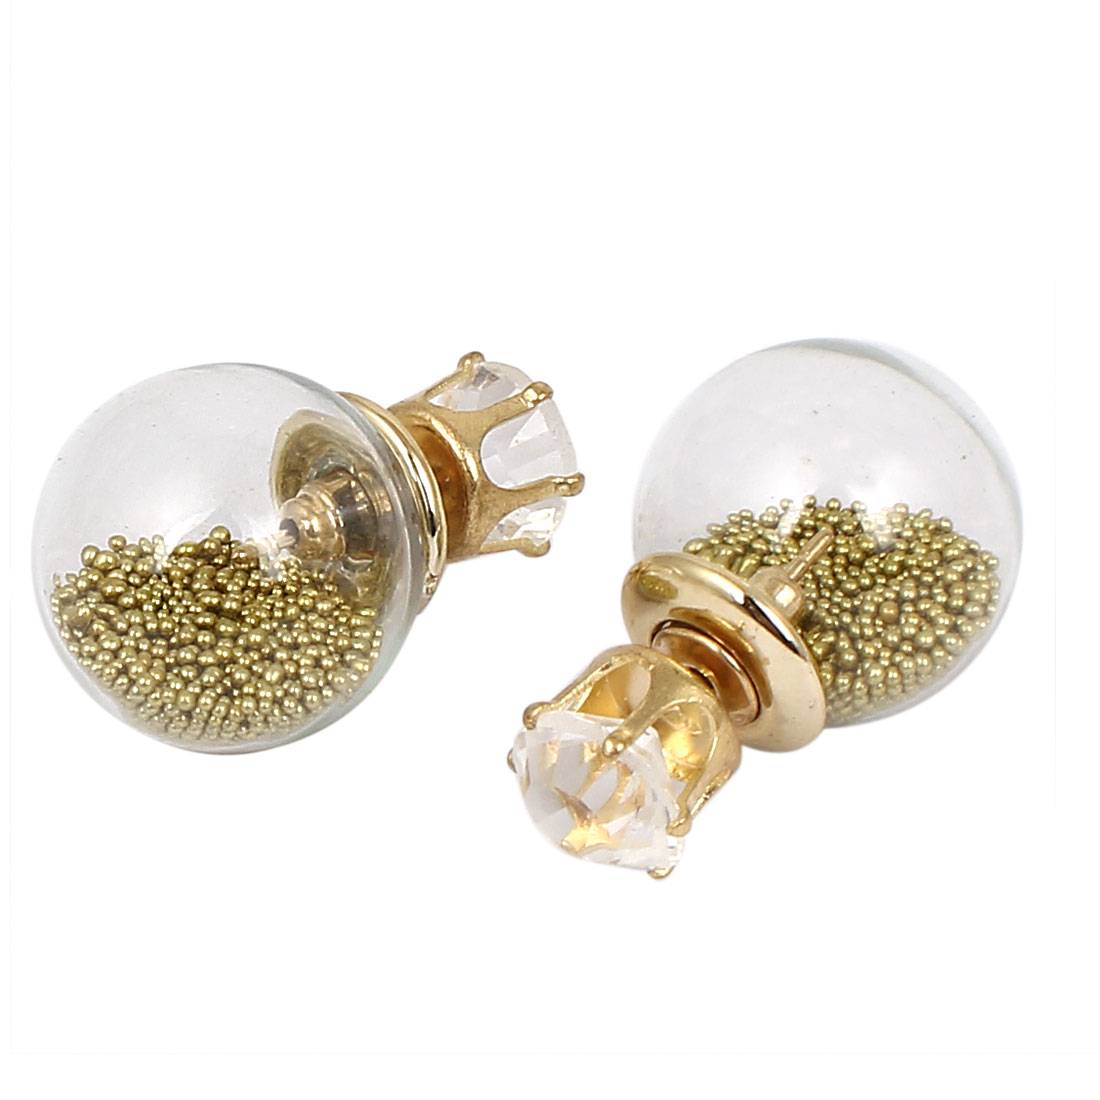 Women Faux Crystal Decor Round Bulb Design Double Side Stud Earrings Gold Tone Pair